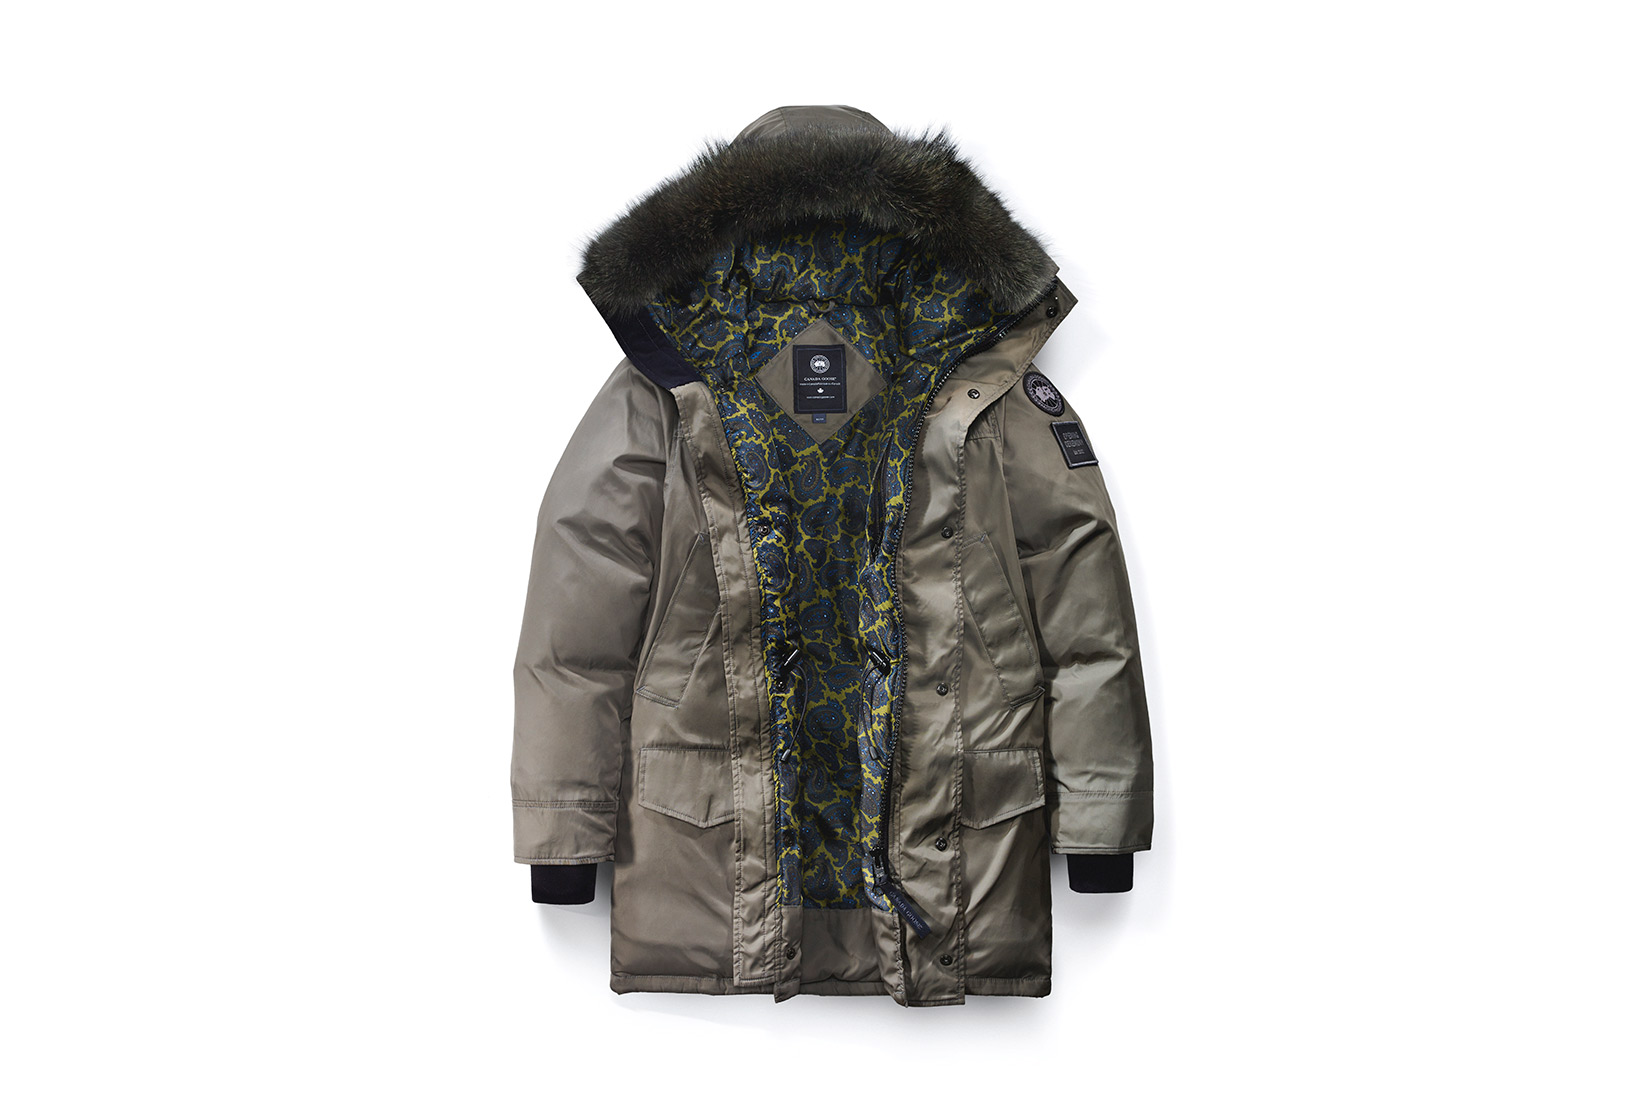 Canada Goose langford parka replica discounts - Canada Goose x Opening Ceremony 2016 Paisley Collection | HYPEBEAST